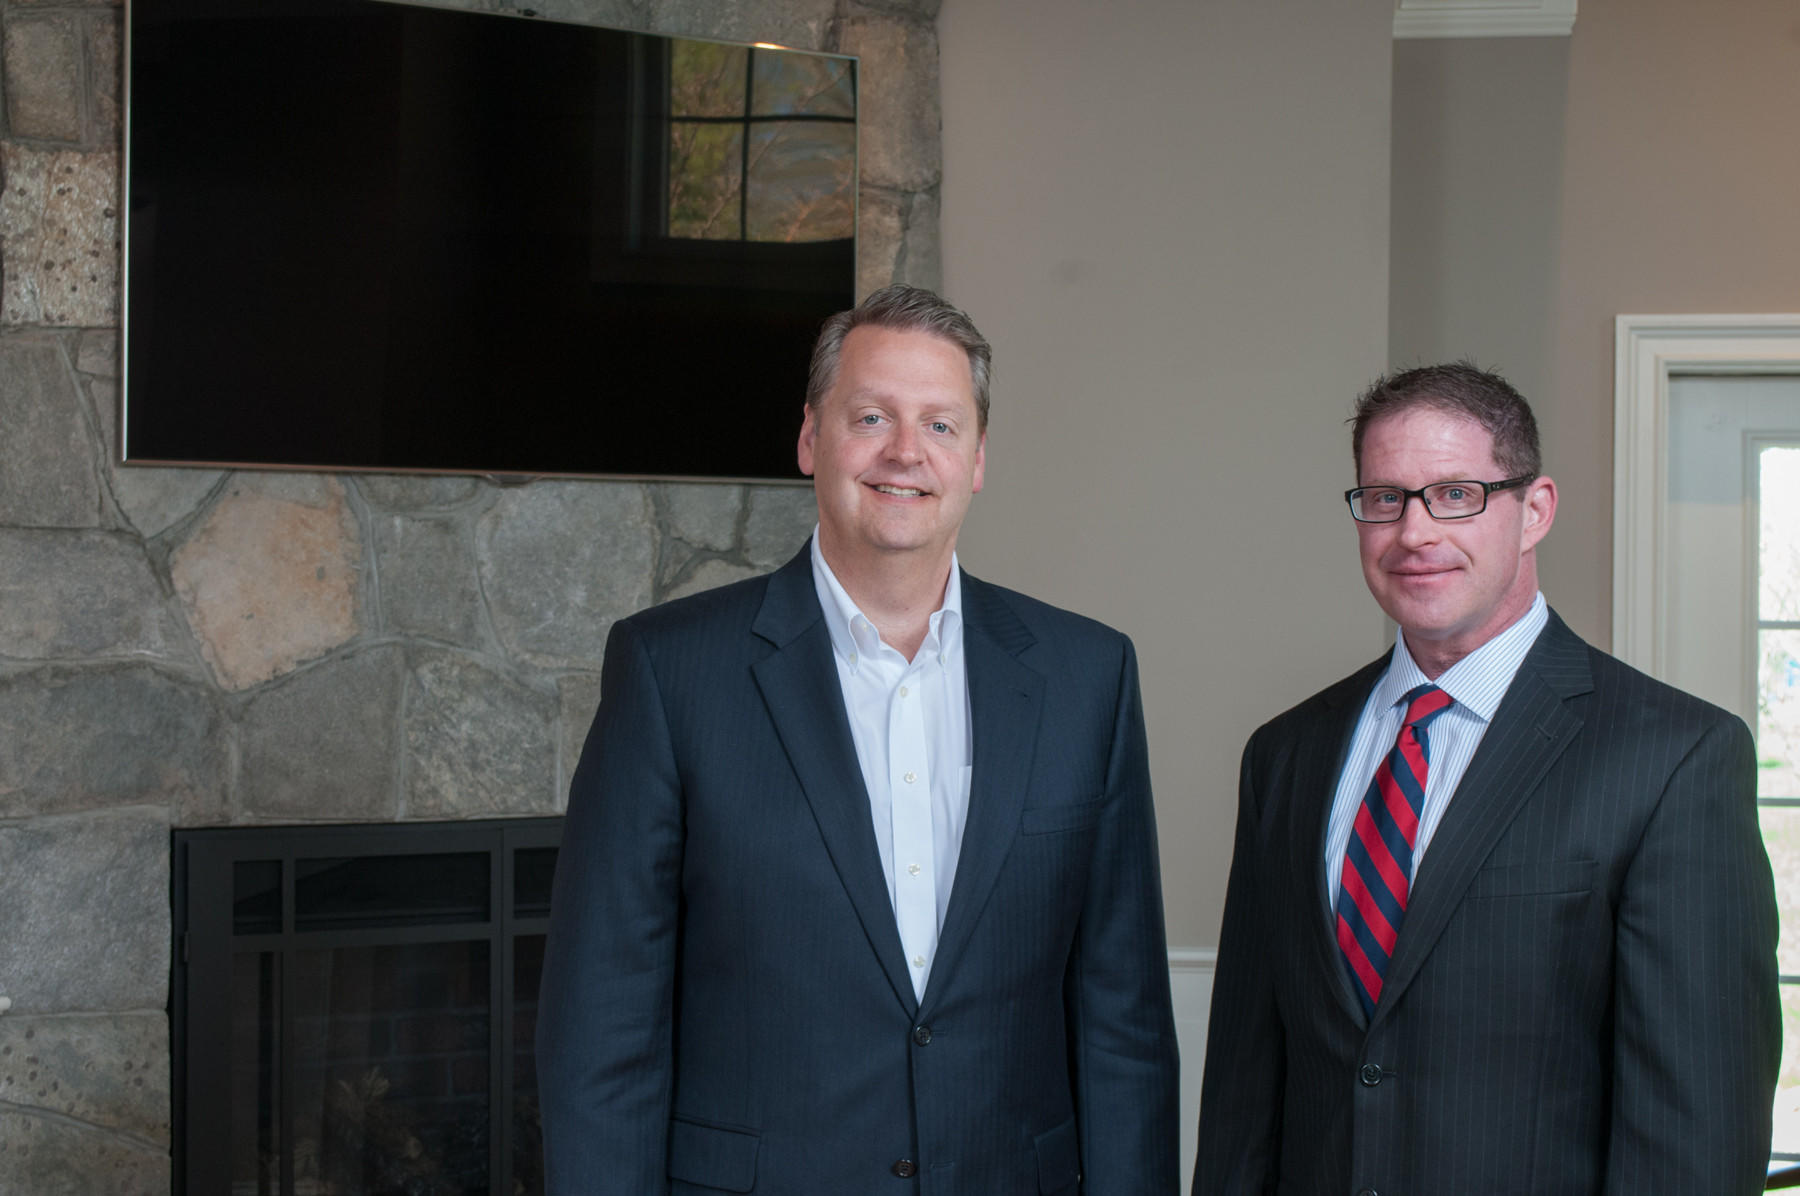 Drs. Paul Guardino and Thomas O'Connor of Personal Care Physicians, LLC, Farmington.